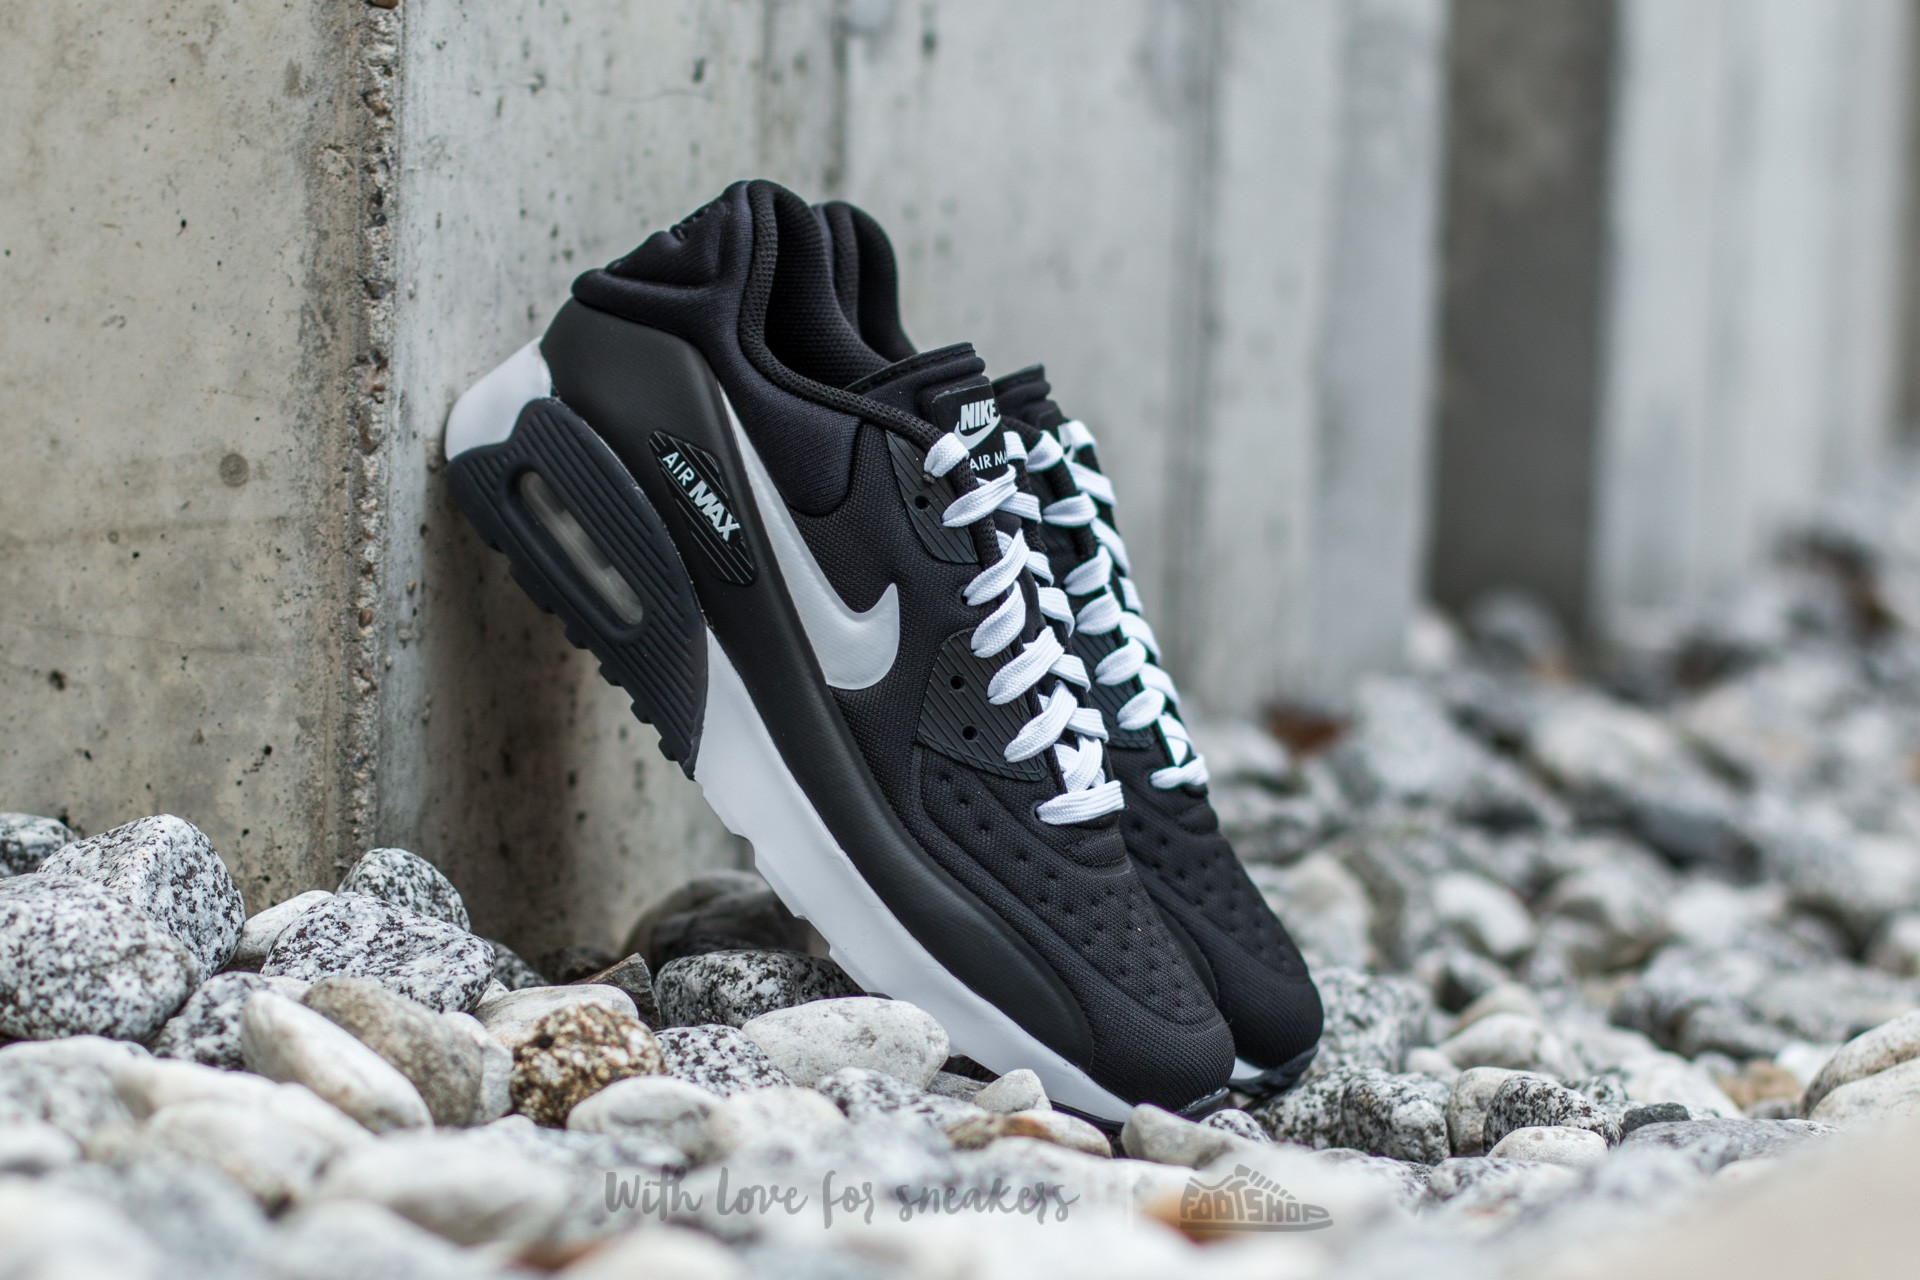 d7ba50599d Nike Air Max 90 Ultra SE Black/ White-Anthracite-White | Footshop